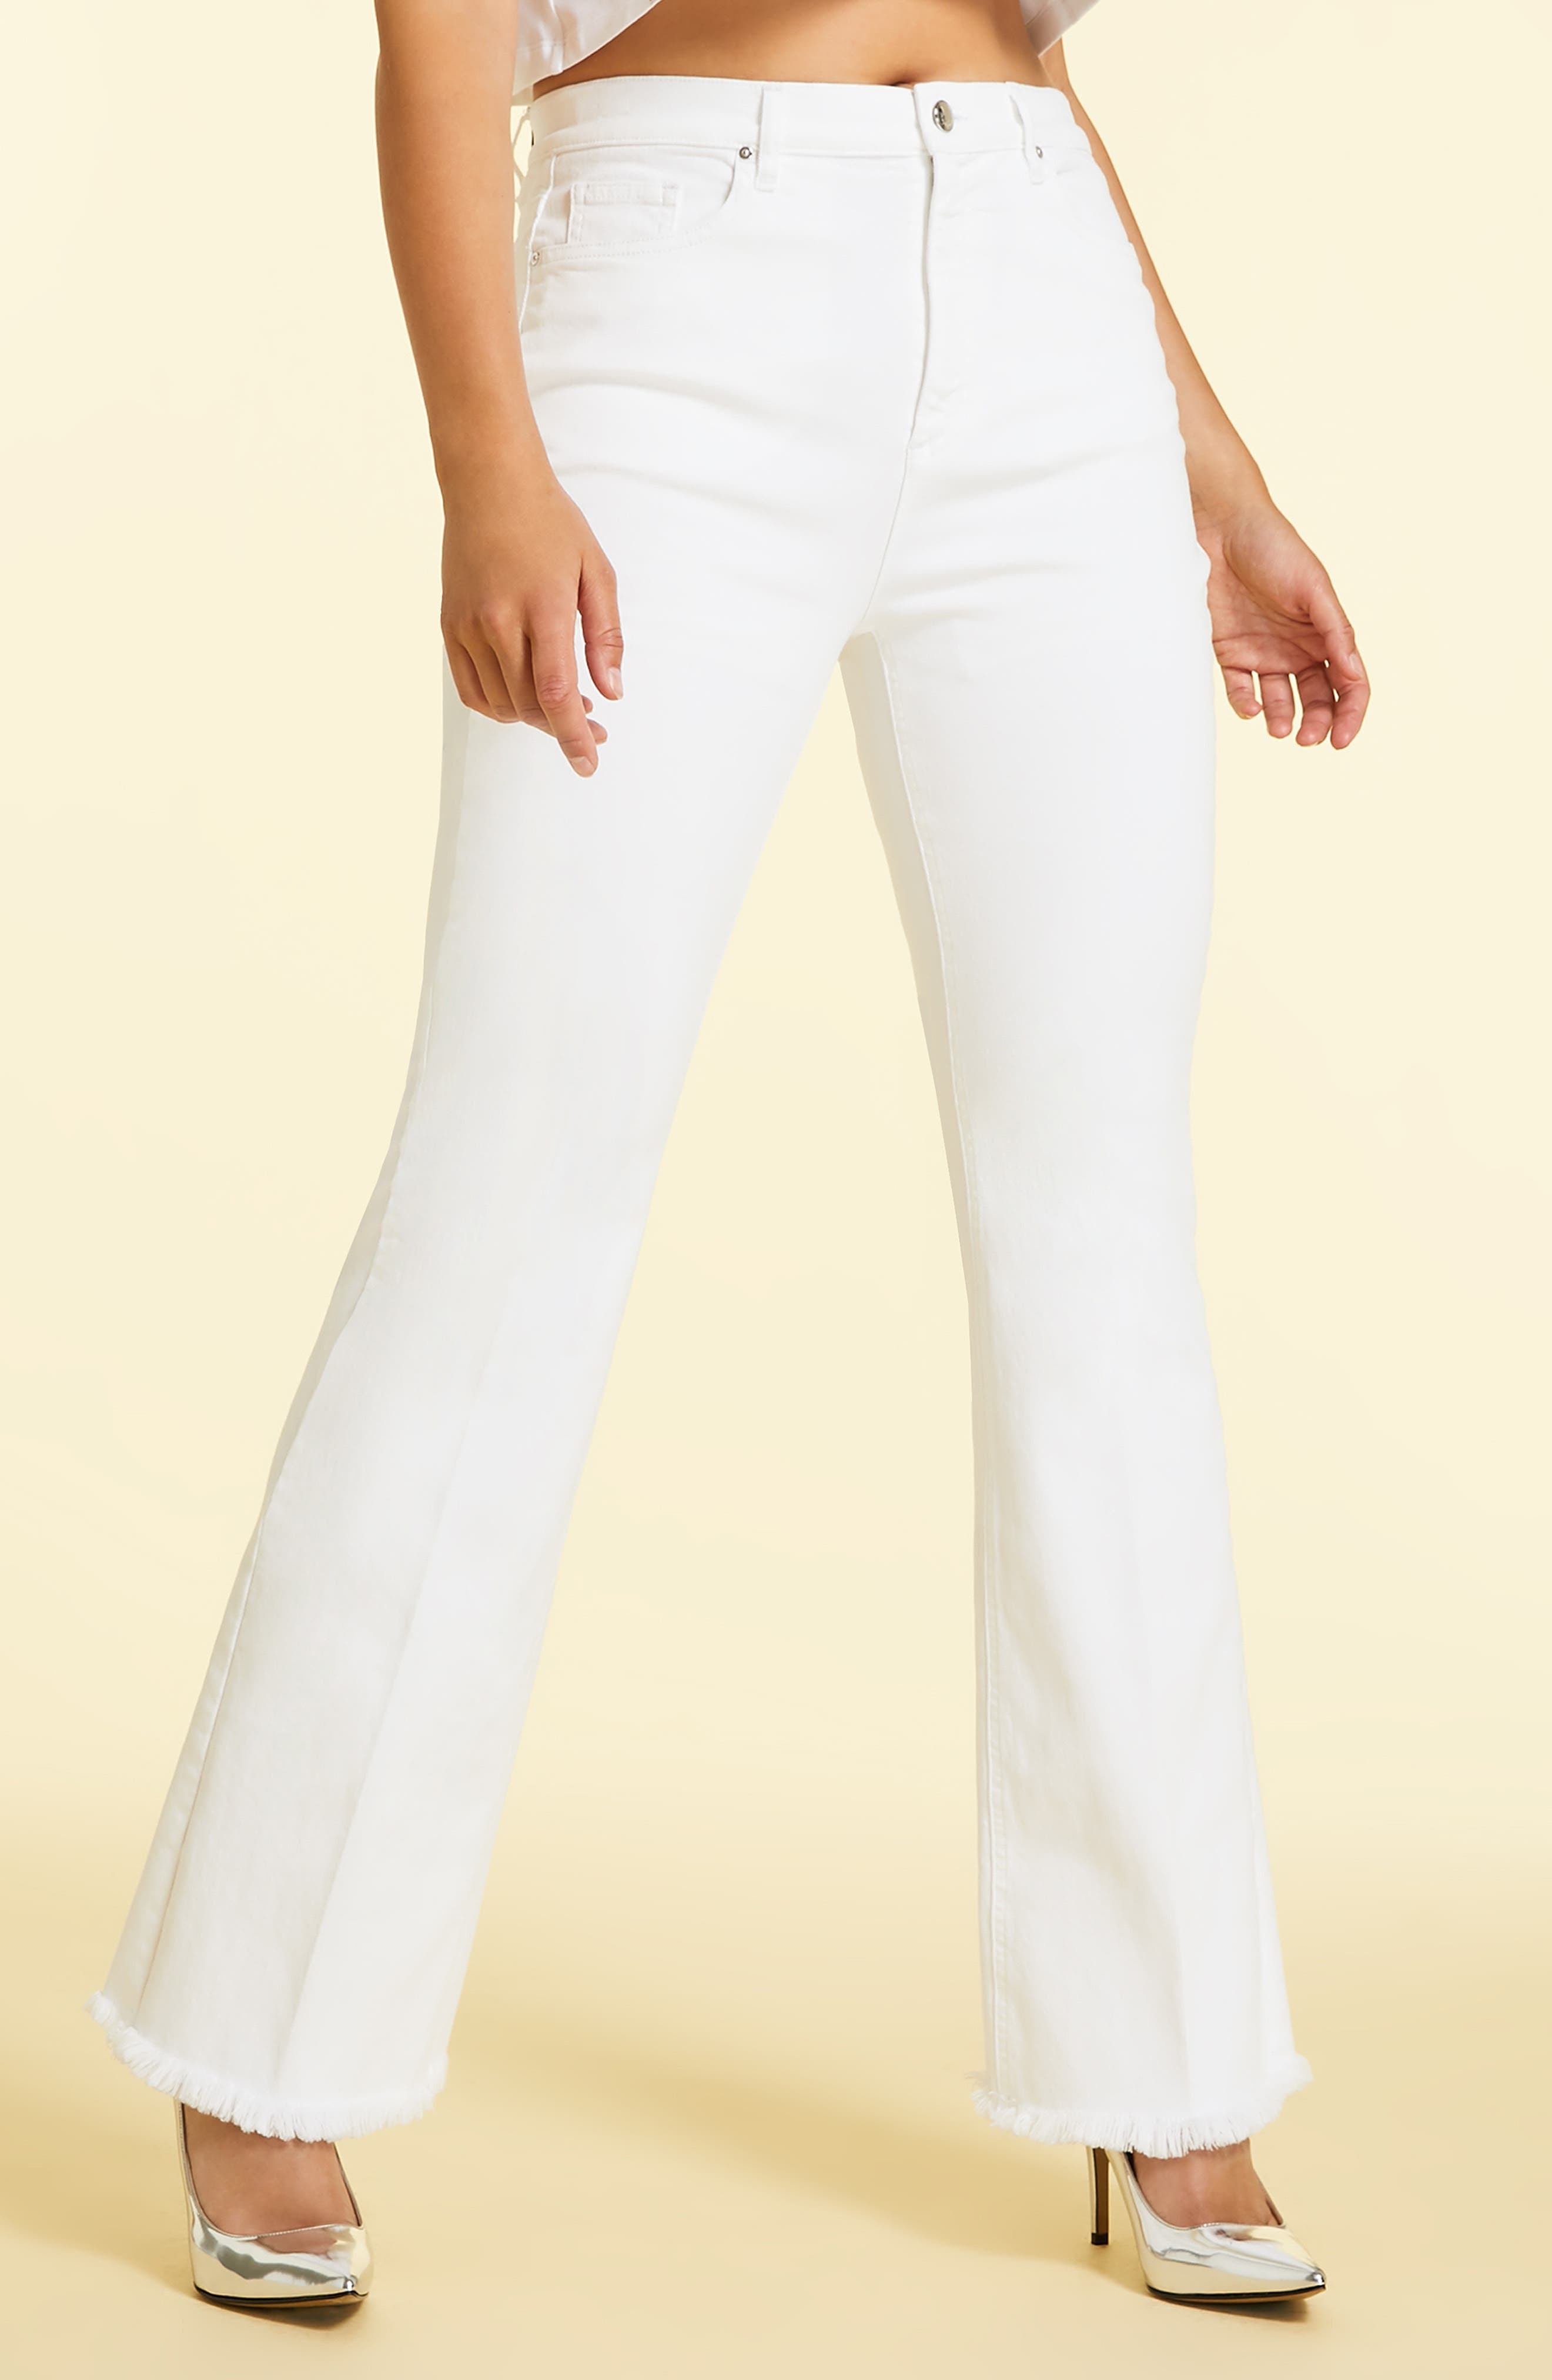 Raffica Frayed Hem Wide Leg Jeans,                             Main thumbnail 1, color,                             100